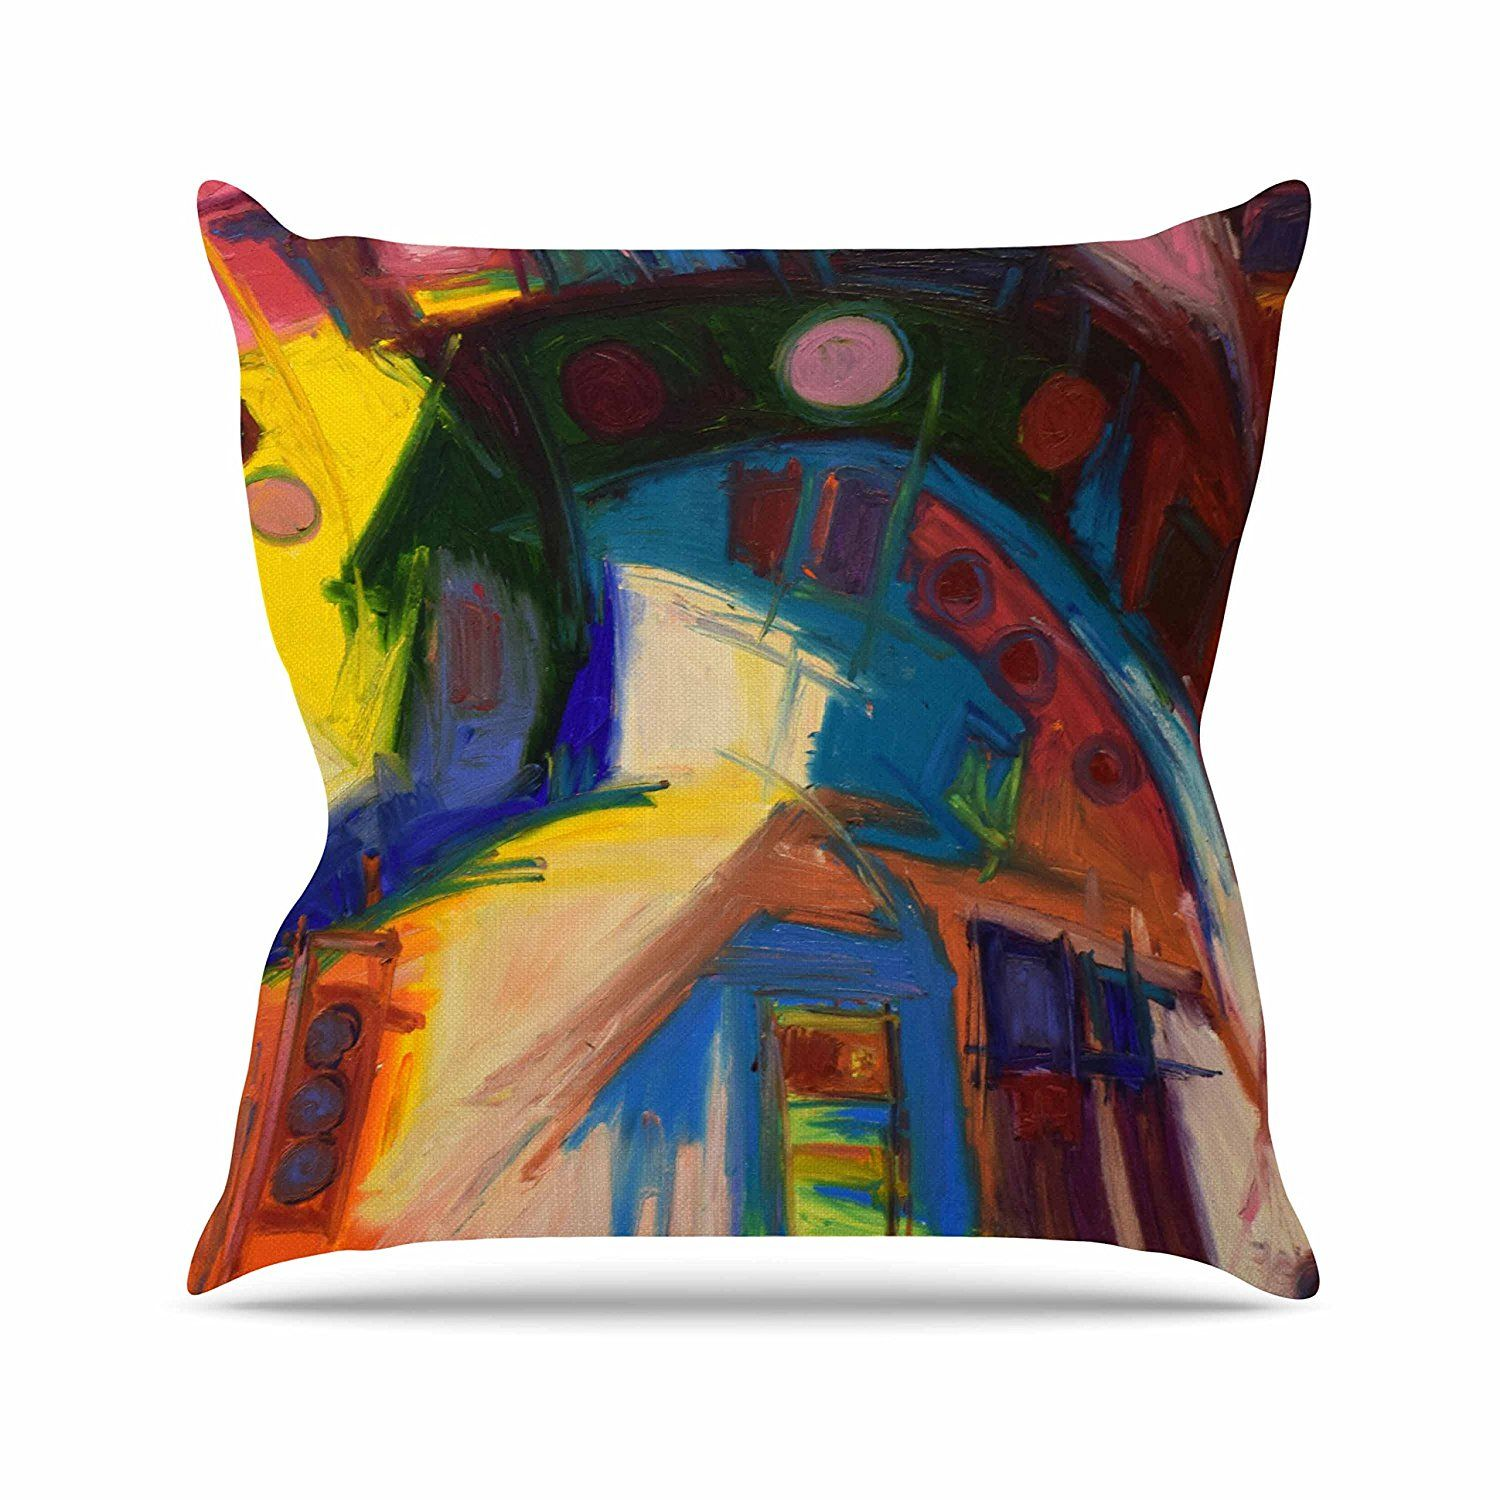 Kess InHouse Art Love Passion Squirrel Teal Brown 23 x 23 Square Floor Pillow